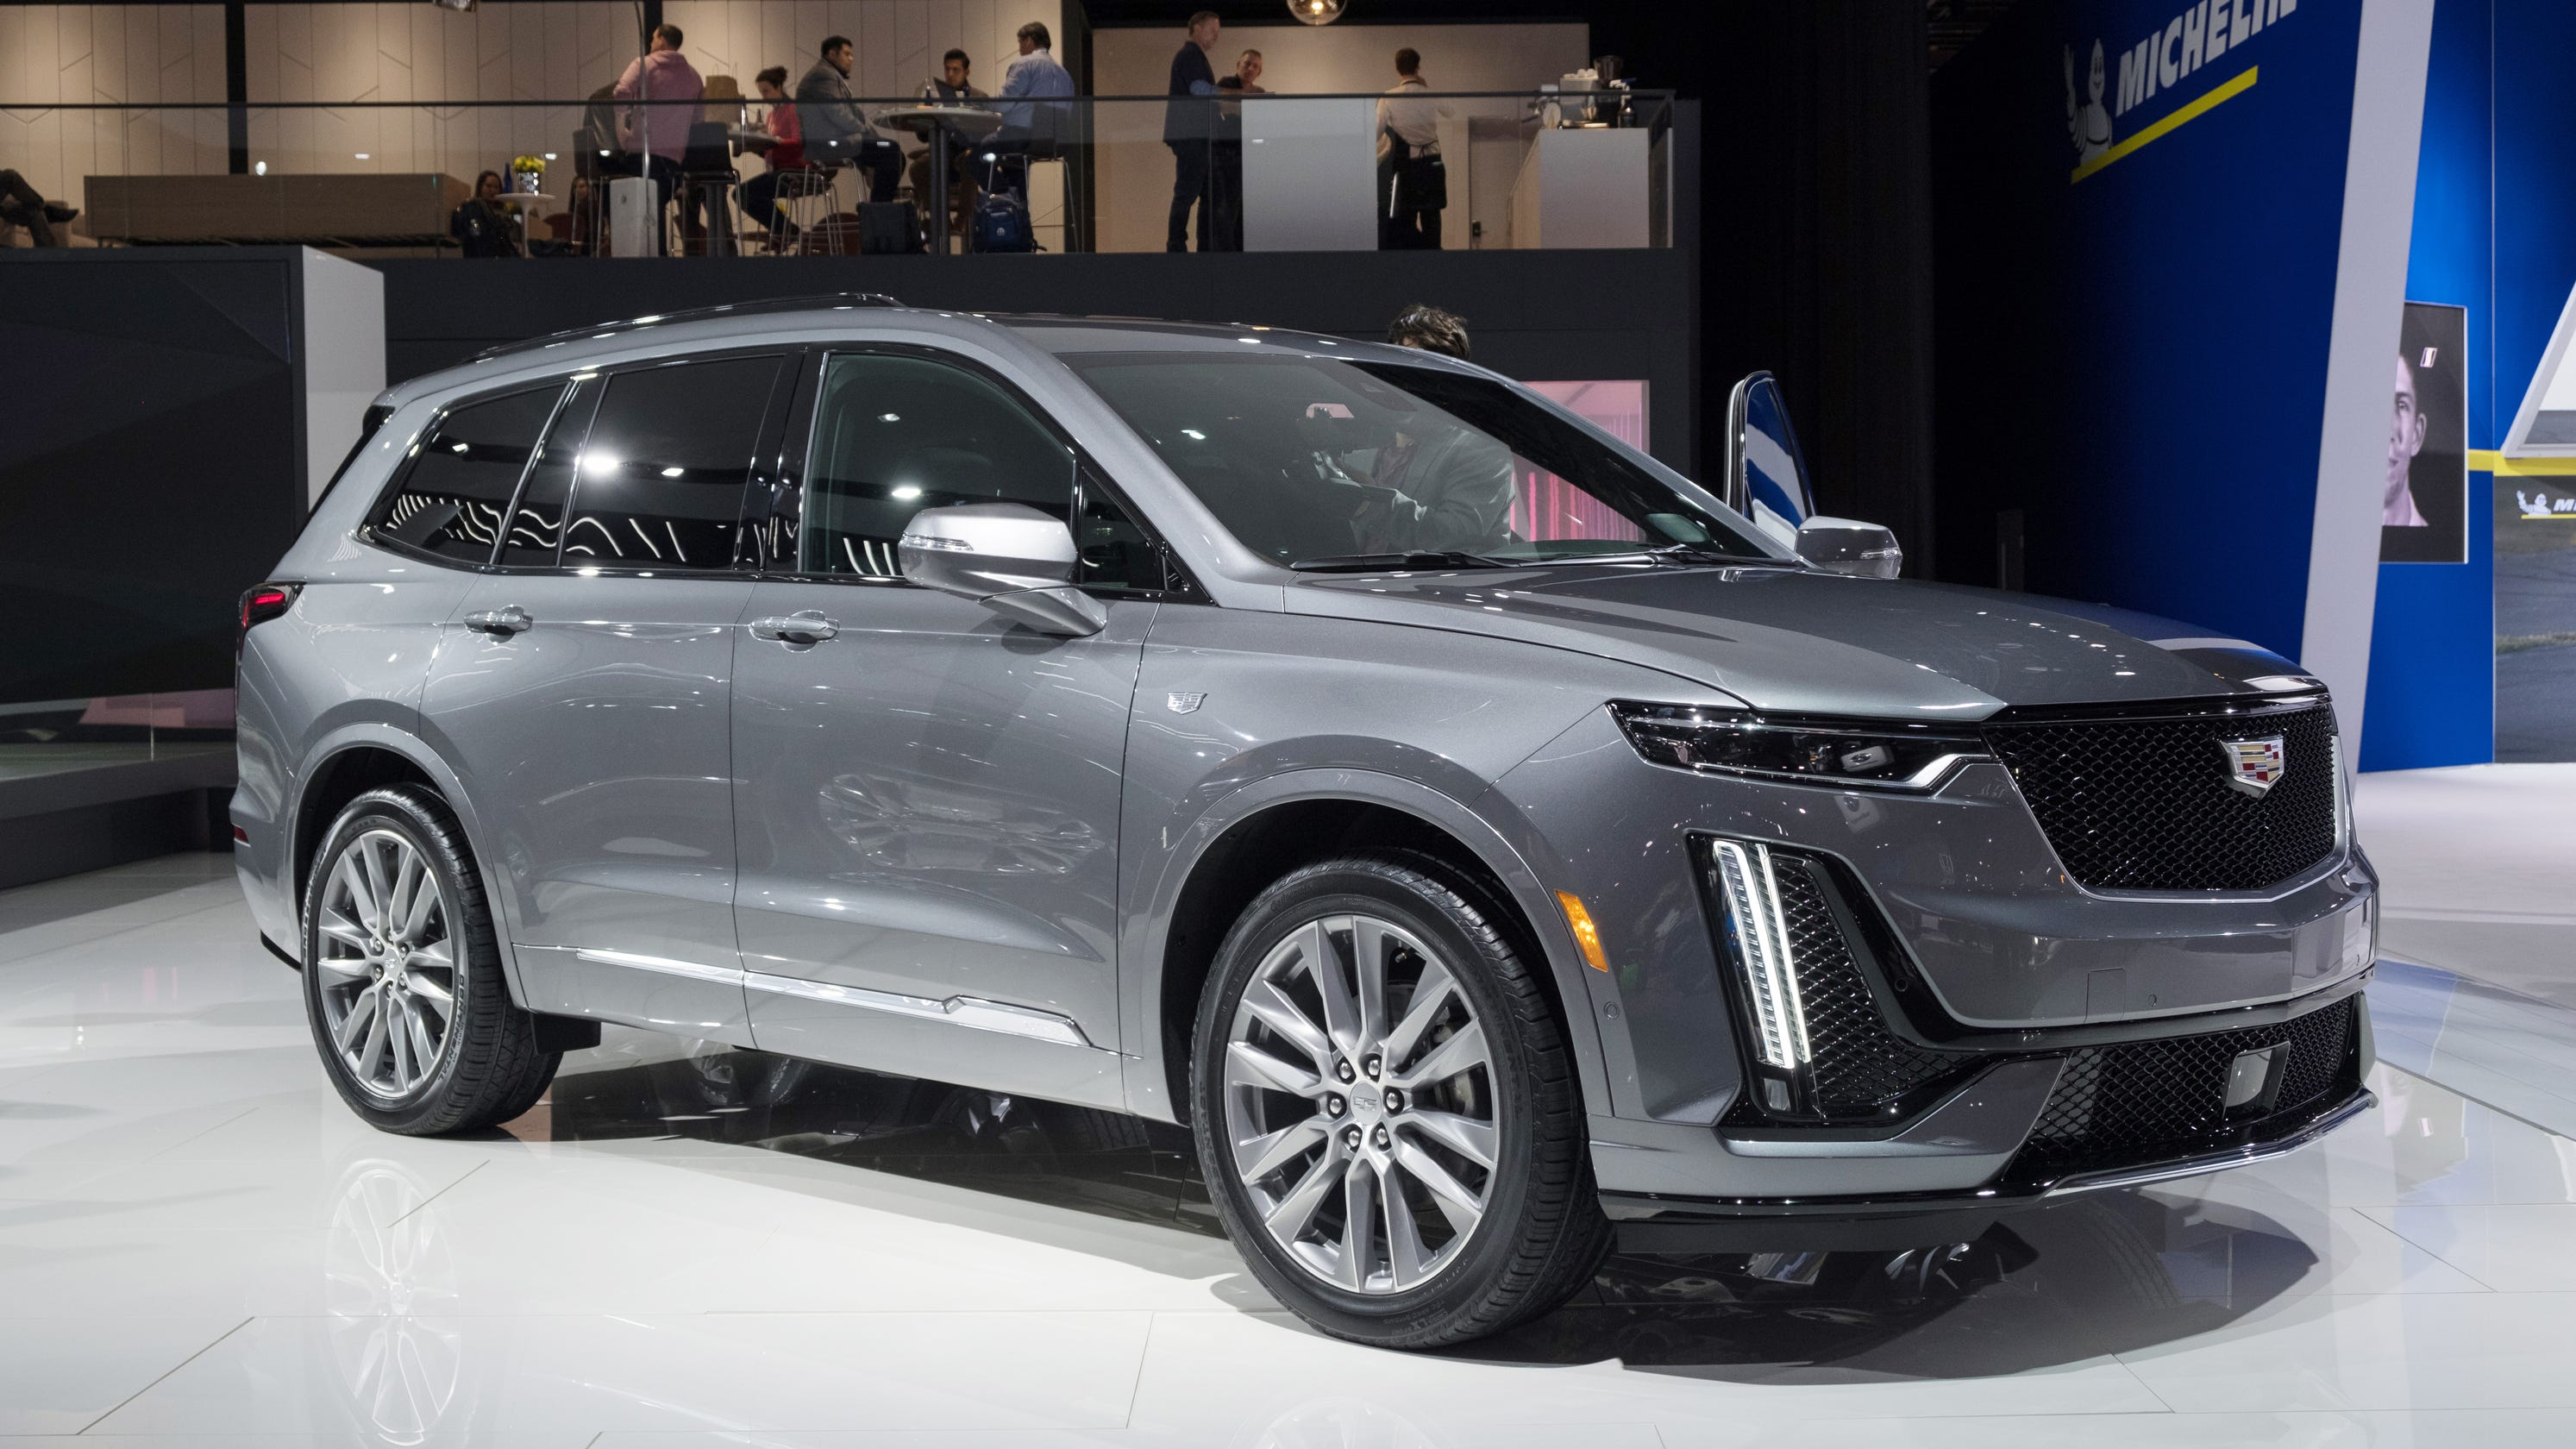 Luxury Vehicle: Detroit Auto Show: Cadillac Thirsts For Revival In Luxury